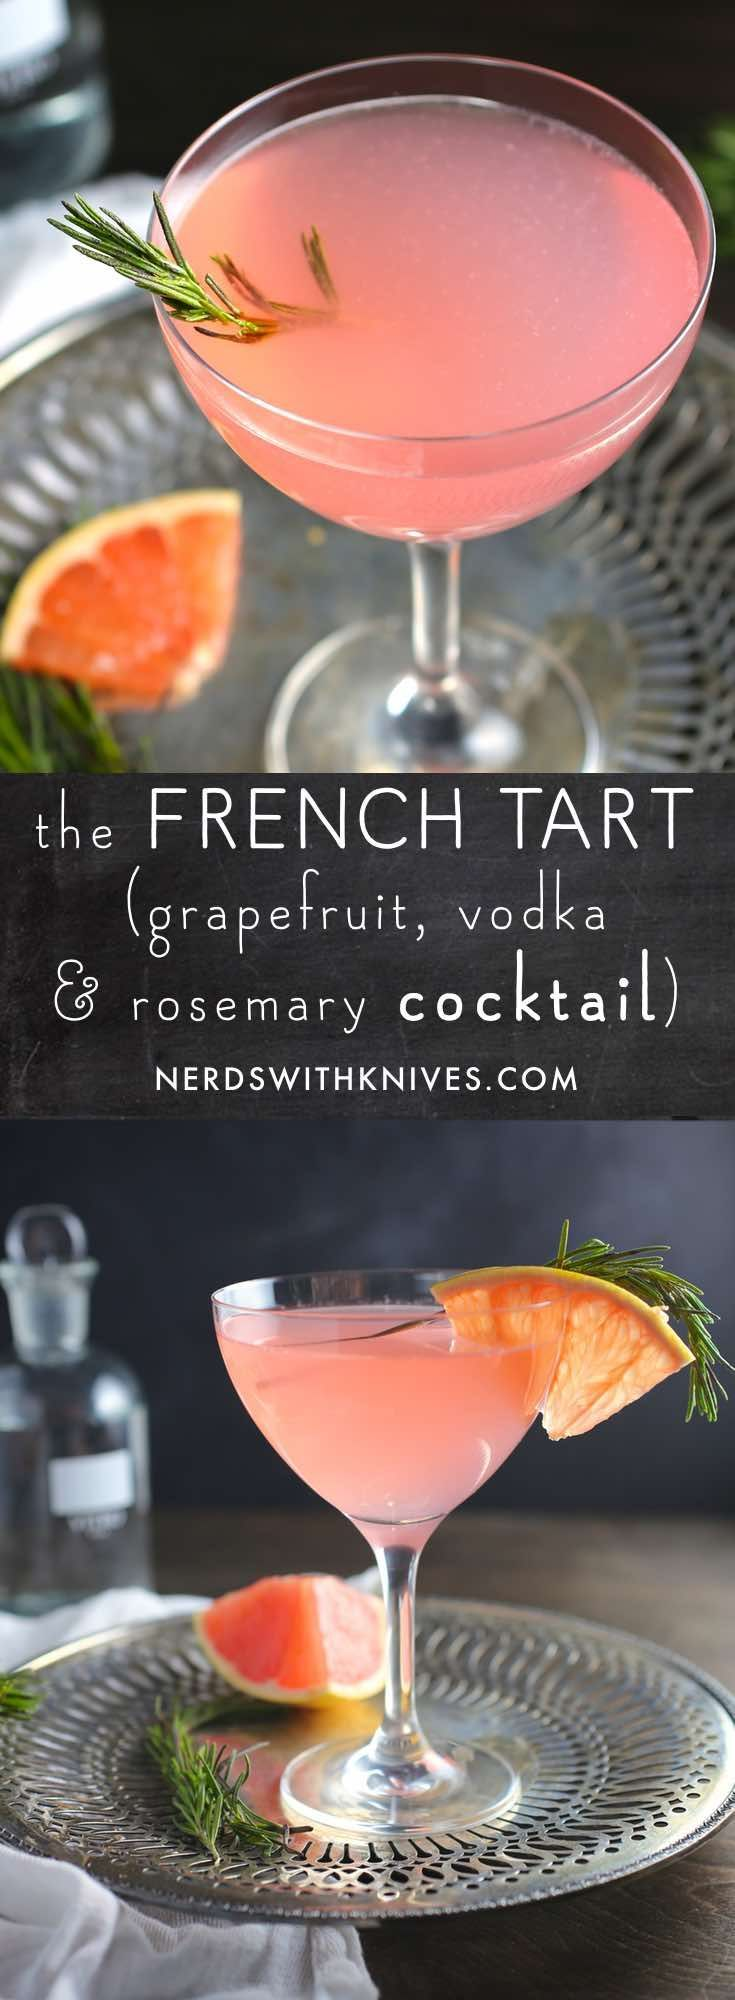 The French Tart (Grapefruit And Rosemary Cocktail)